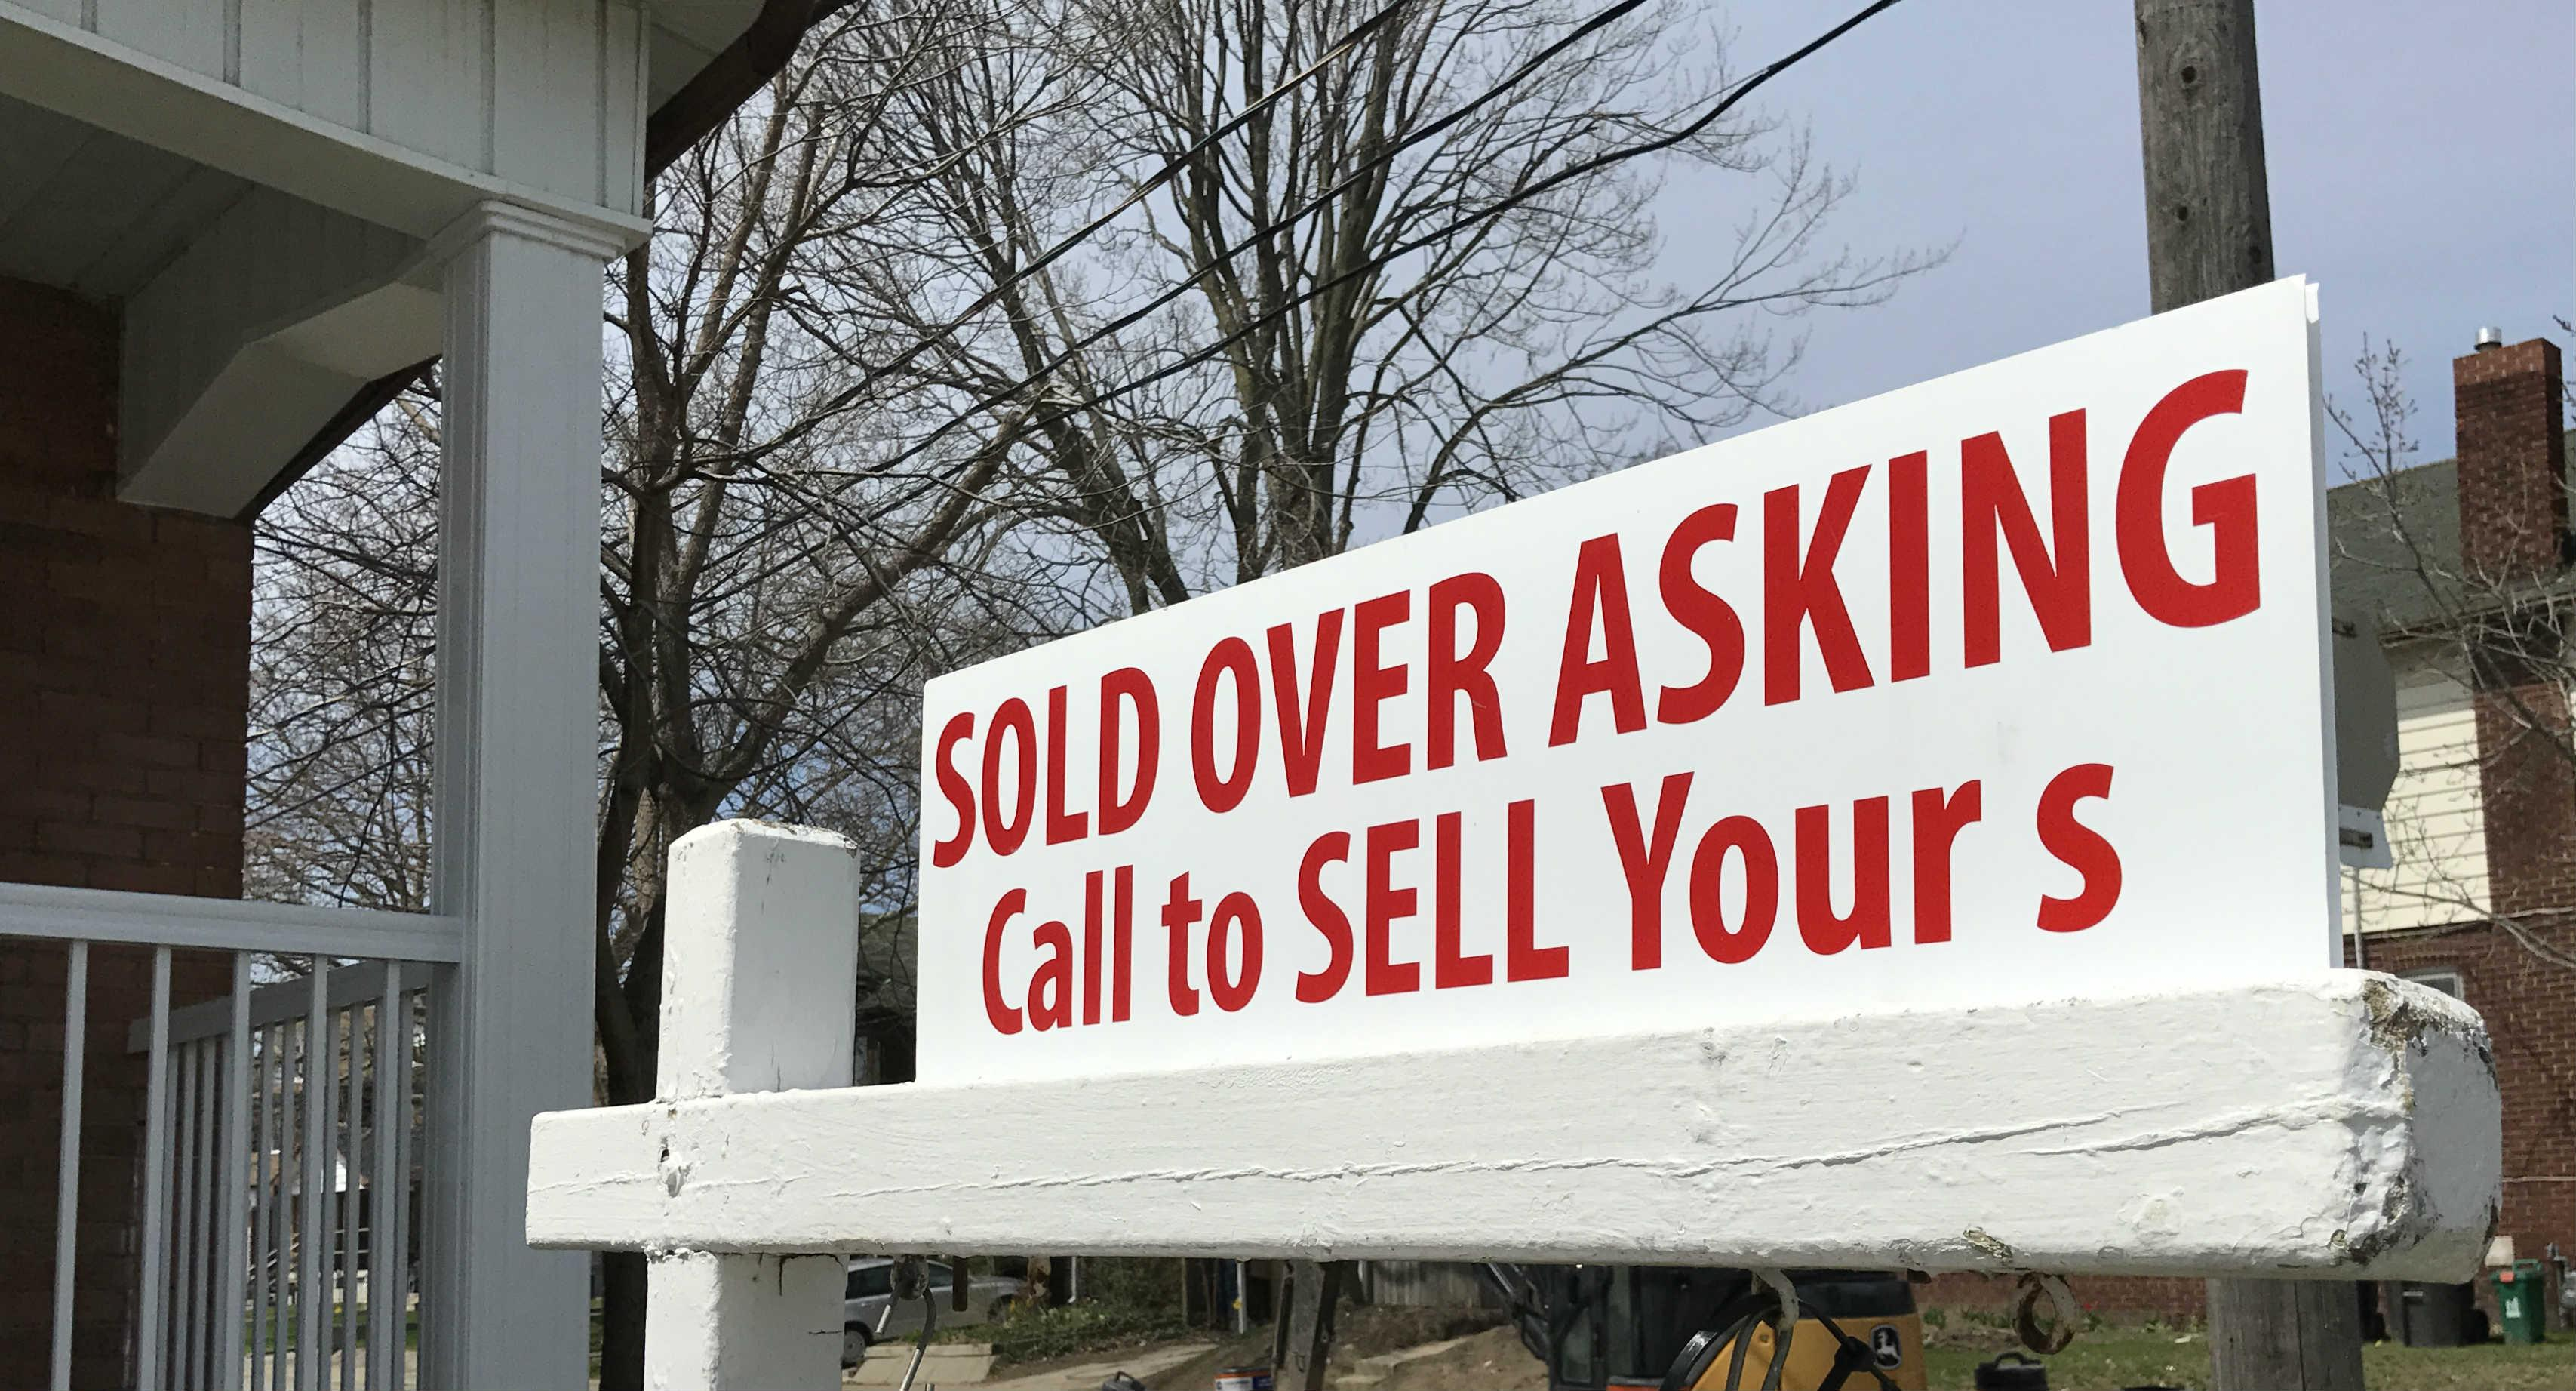 Real estate sold over asking lawn sign